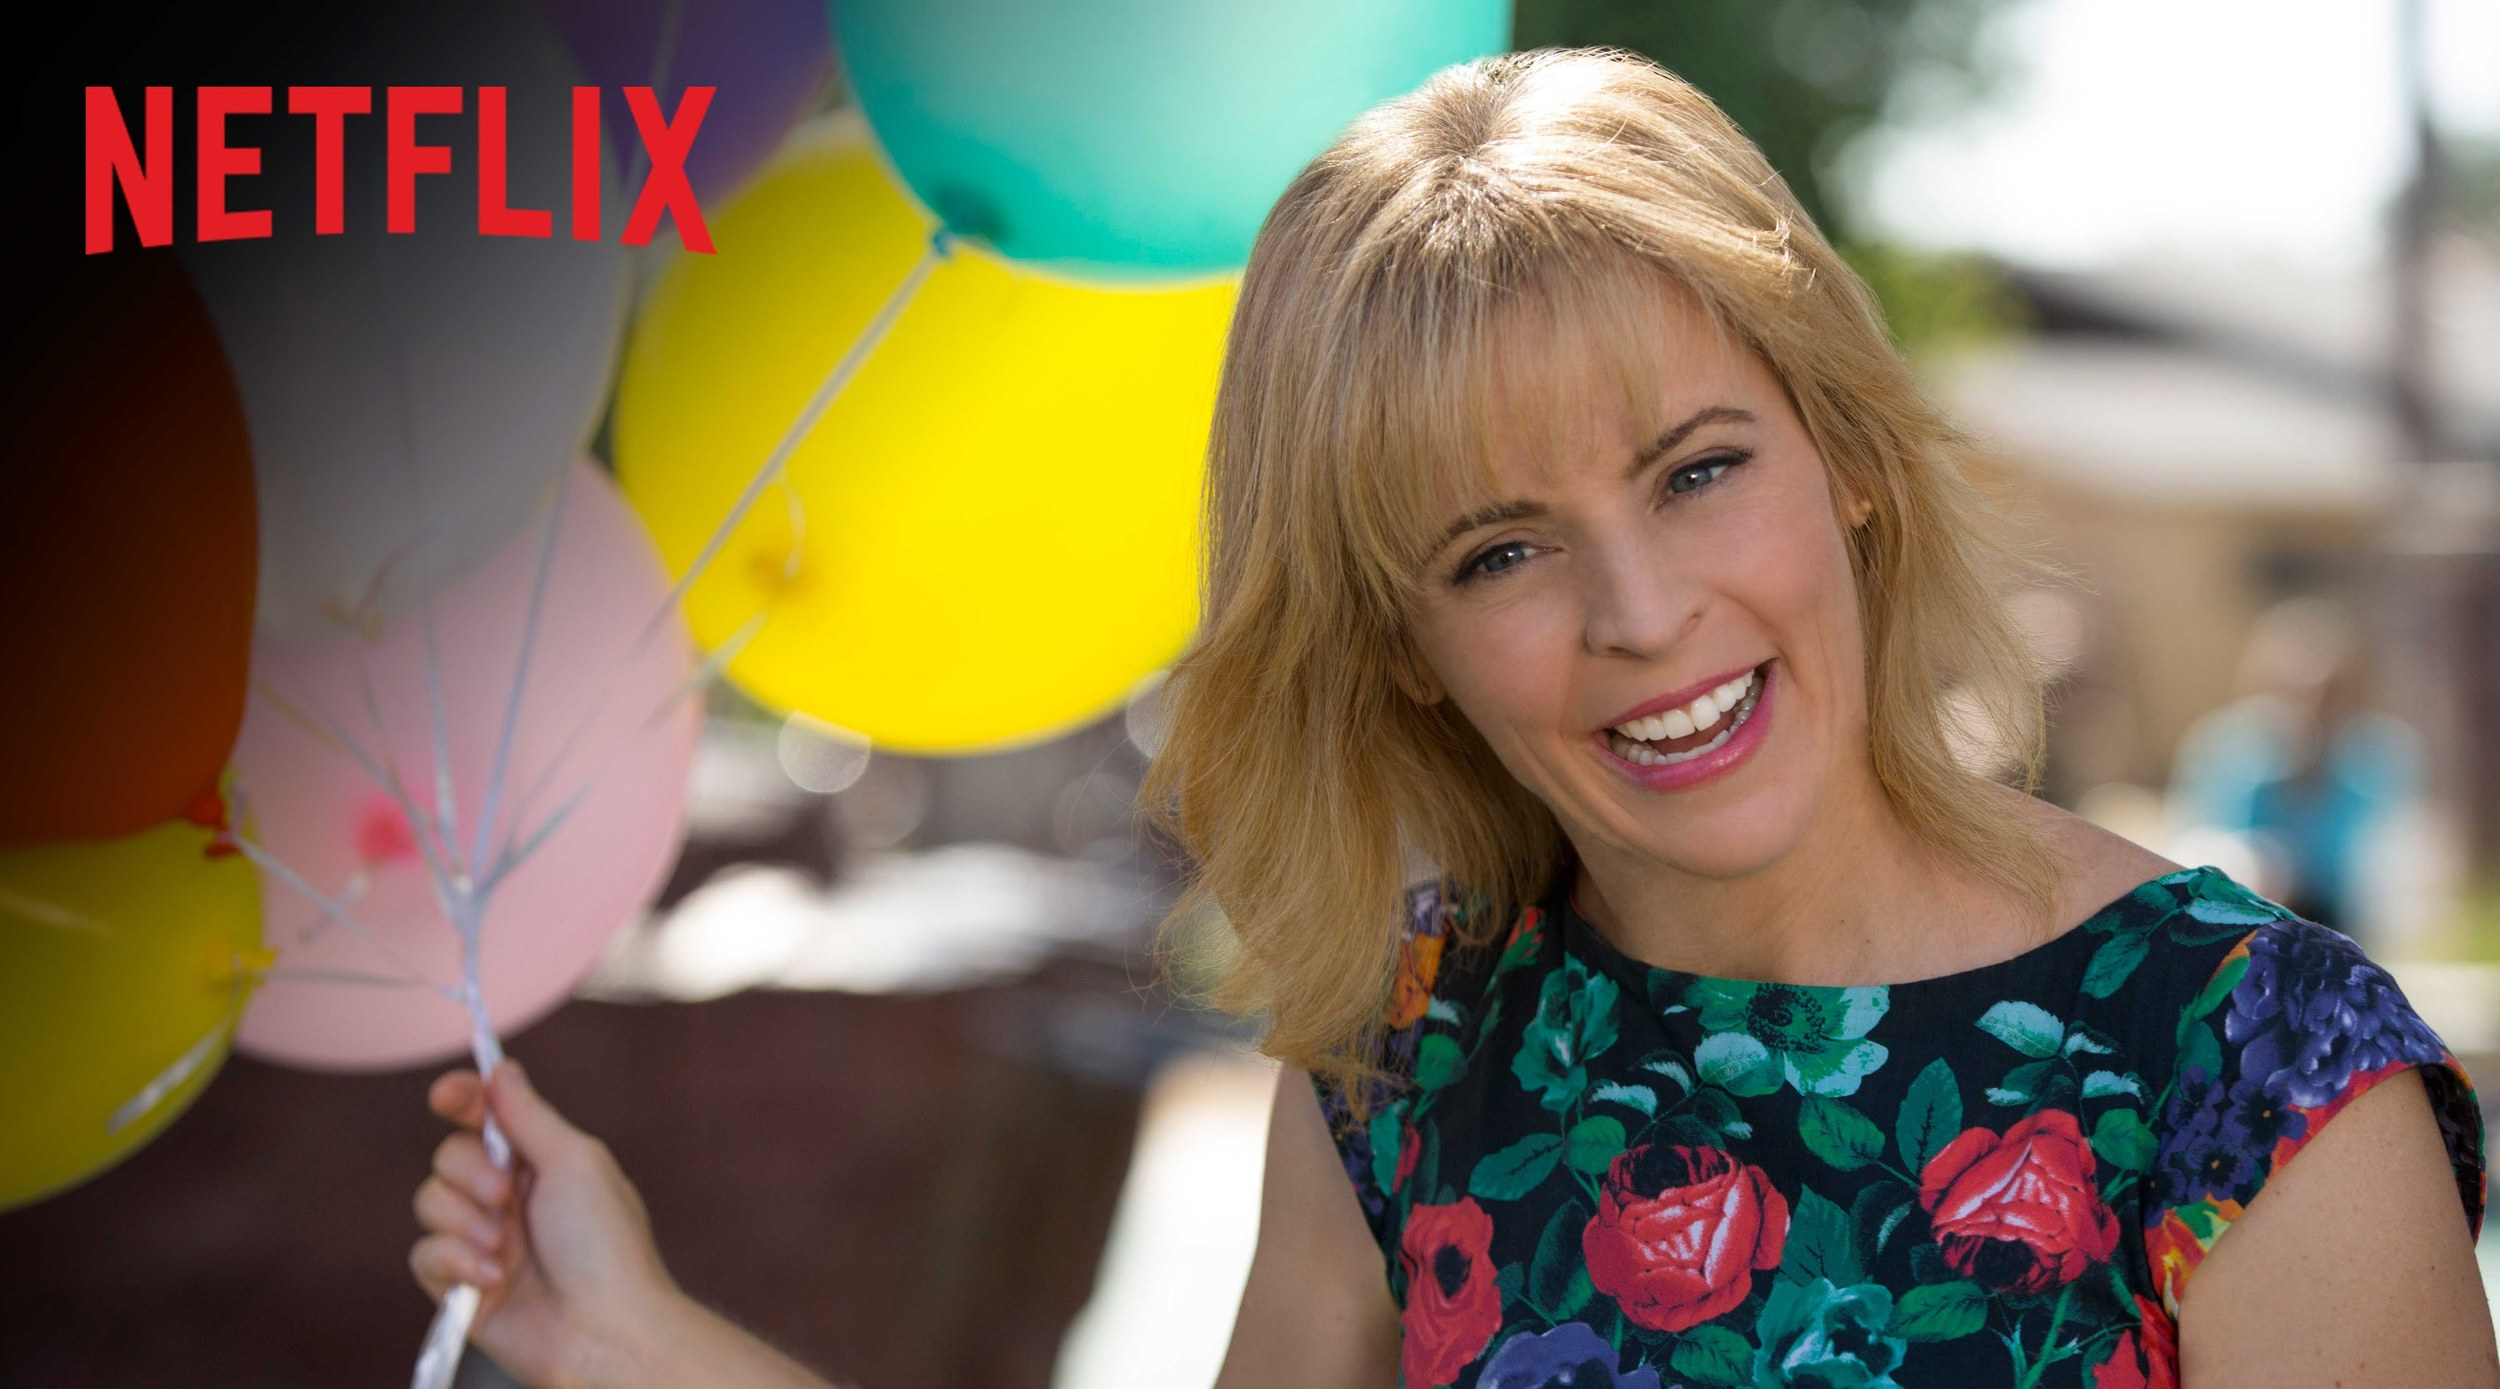 Maria Bamford who is known for her zany   stand up   comedy and voice acting made her own show for Netflix. I only recently heard about her through Chris Hardwick's 'The Nerdist' podcast, and she had me paying closer attention than usual because she's such a character. So I decided to check out her show on Netflix, and it's hilarious! You can get good idea of what kind of comedy you're gonna get just through the weird but funny intro.   The show is autobiographical and we see Maria playing herself in Hollywood hanging out with her manager, her best friends, and her two dogs that can talk! (But only to her.) We also see some flashbacks of her in her hometown of Duluth at a time when she was struggling with her bipolar ll disorder and depression, how is that funny right? Trust me it is. I highly recommend this new comedy, it's so well done, so interesting, and the cast is phenomenal.